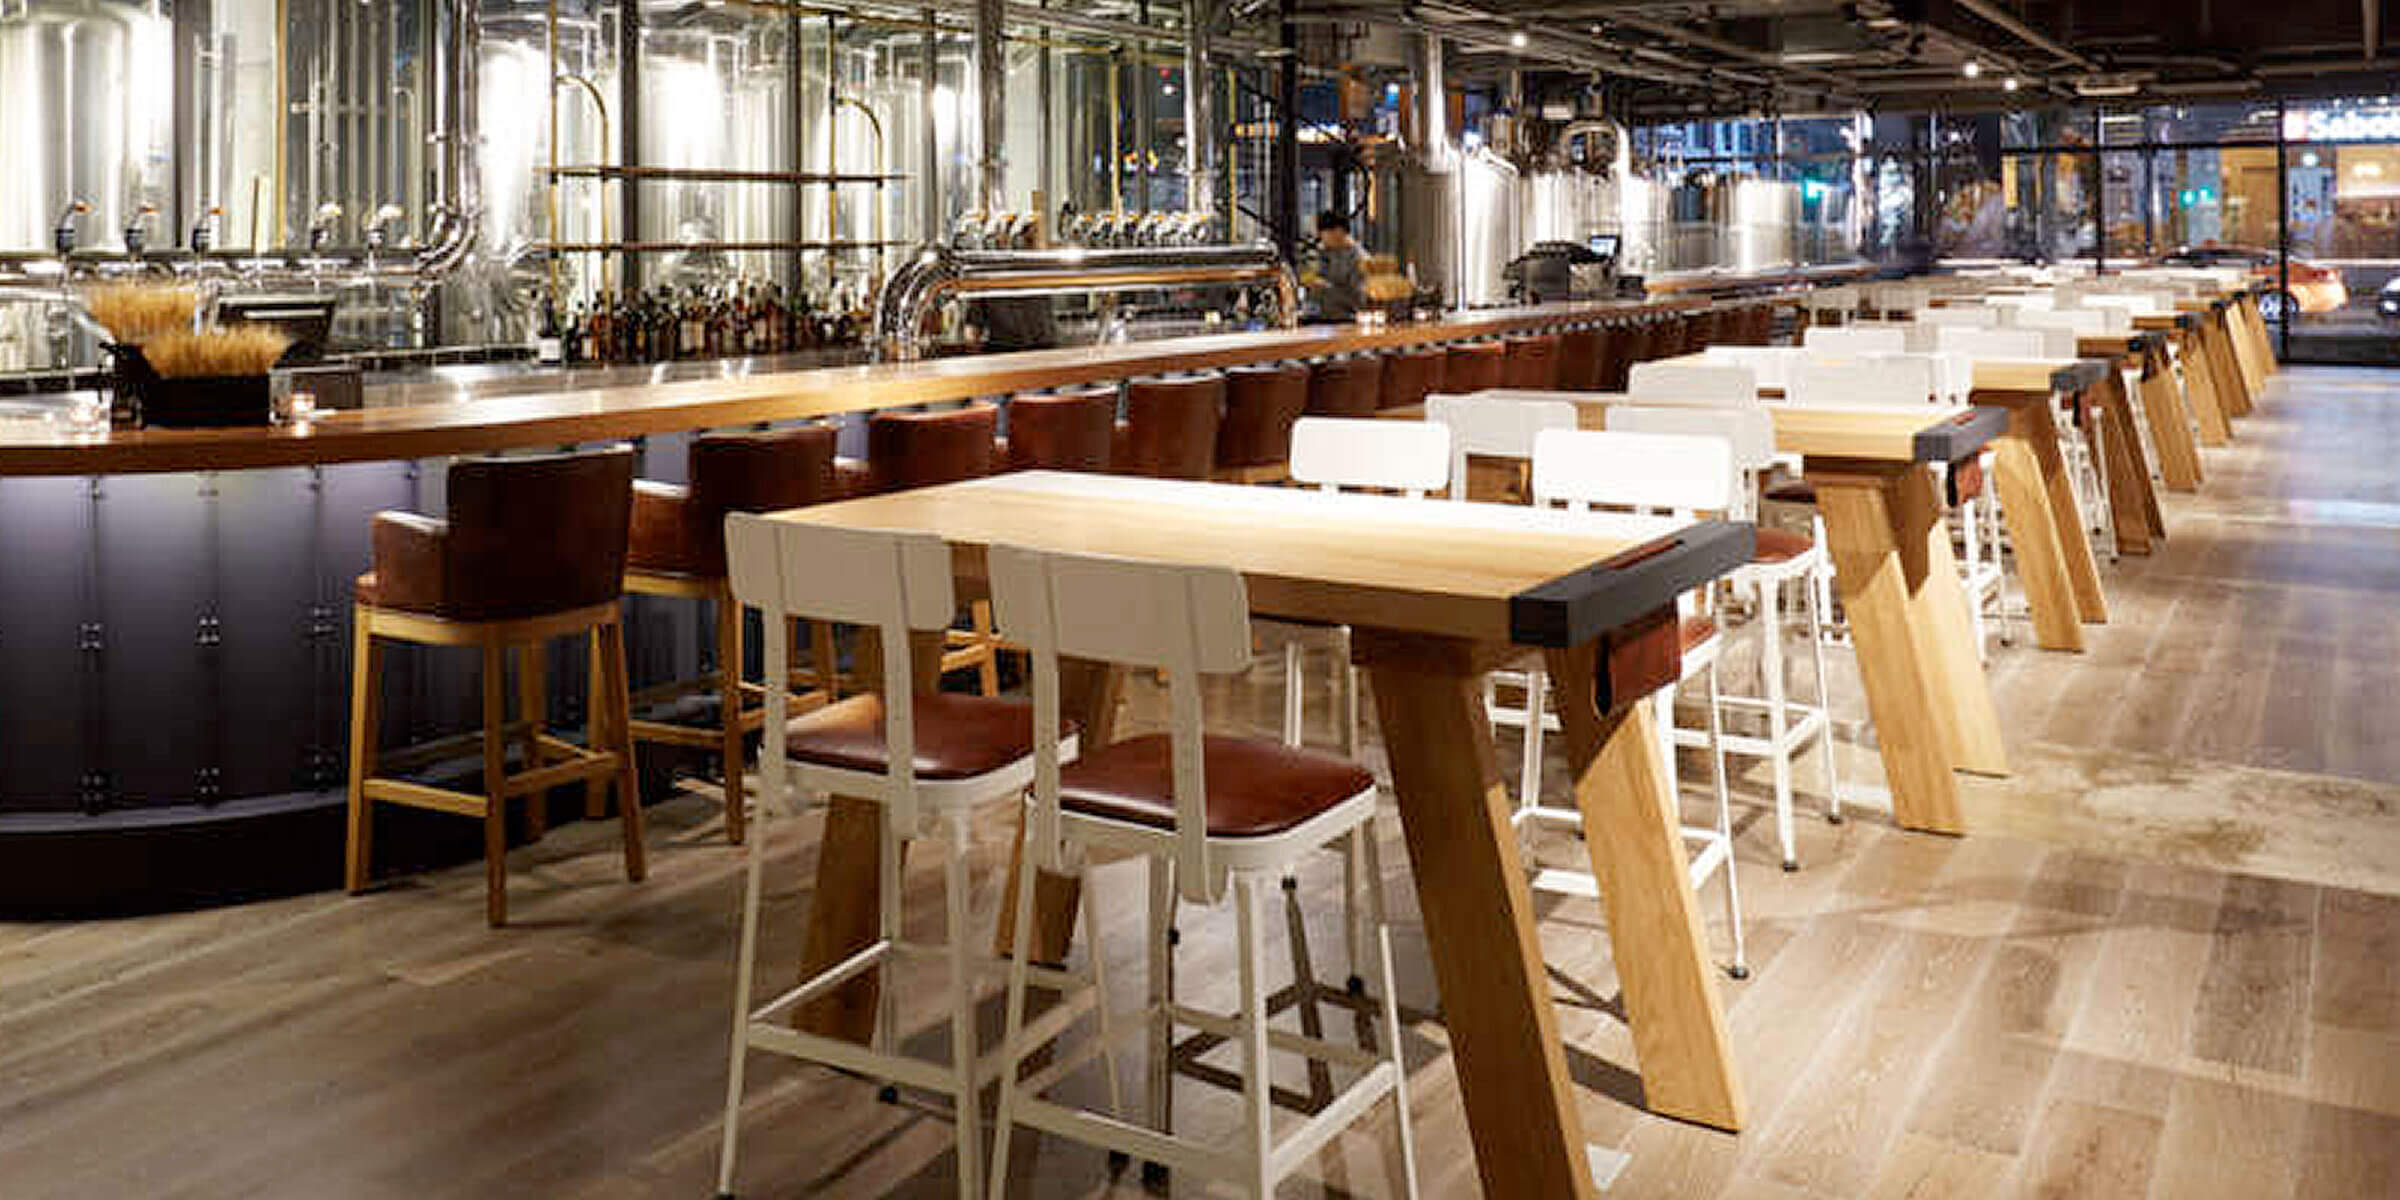 Inside the taproom at the Seoul, South Korea location of Goose Island Beer Co.